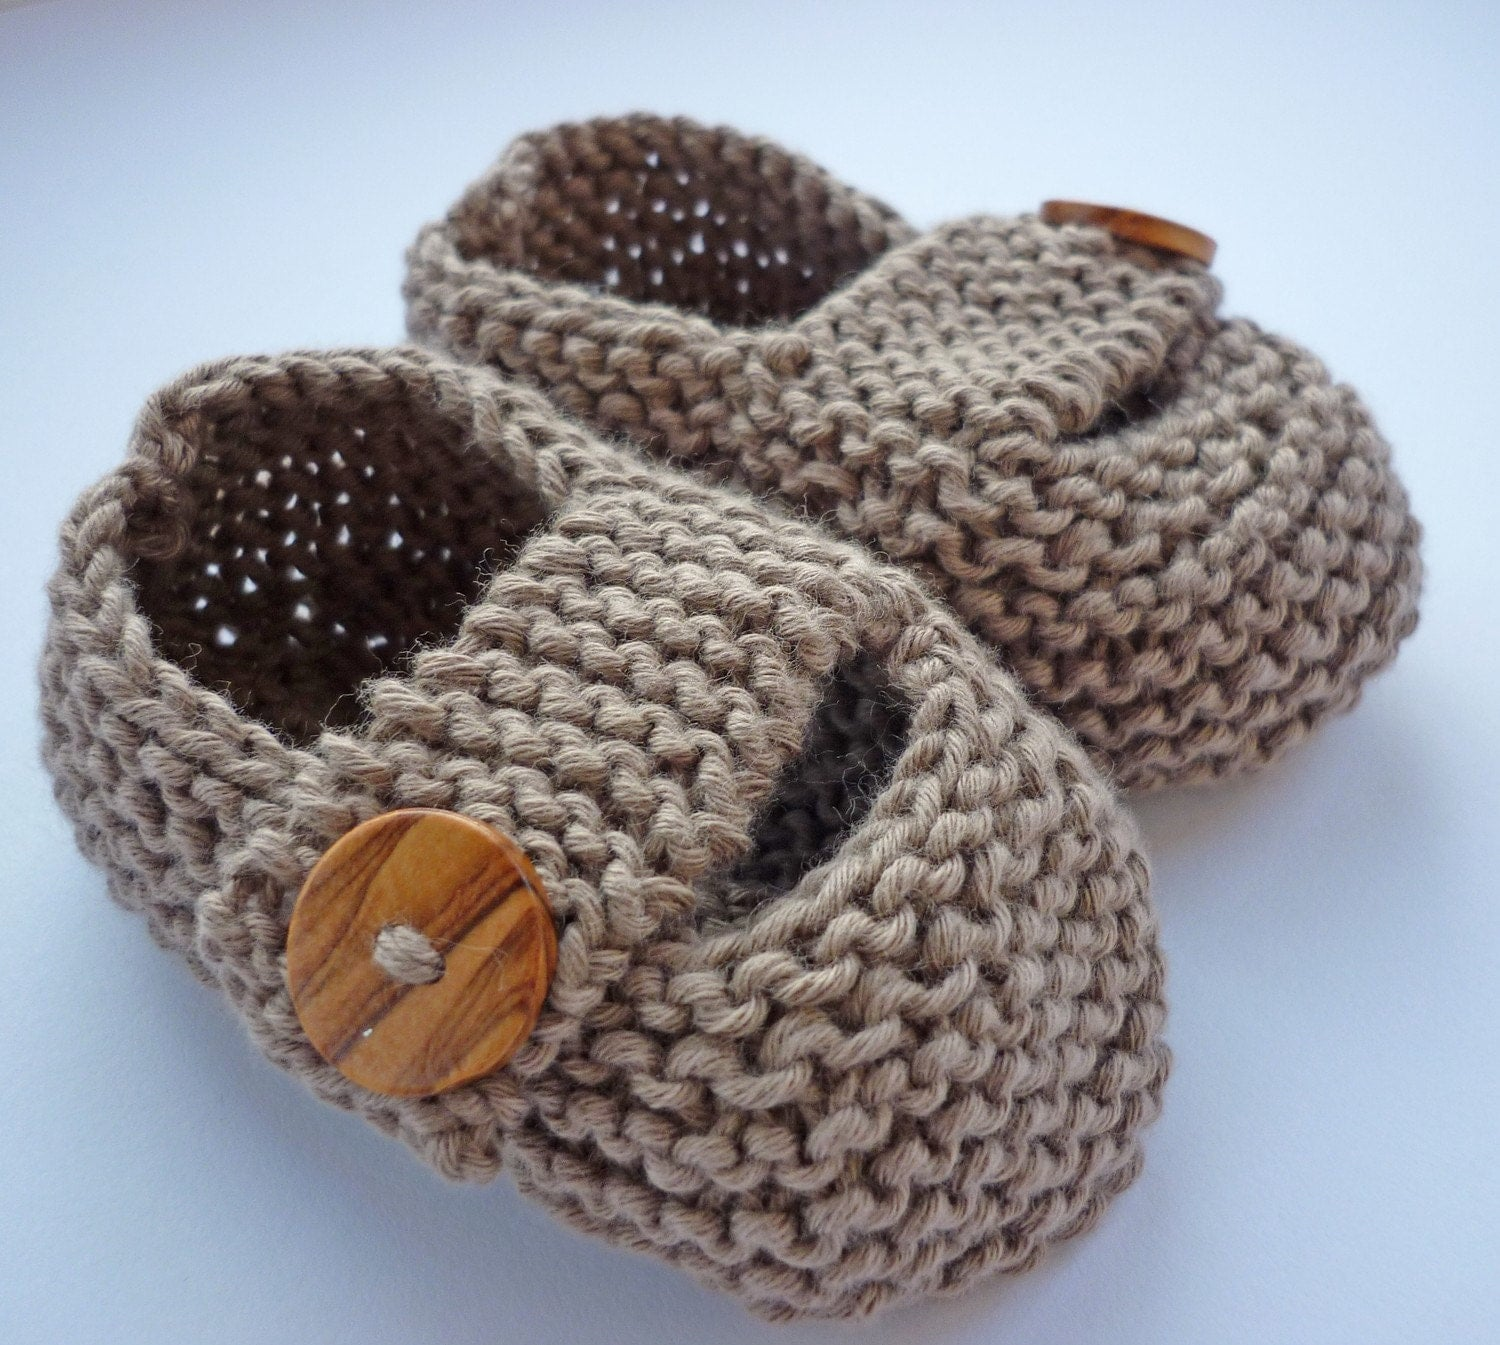 Knitting Baby Shoes : Knitting pattern baby shoes with chunky strap keelan by